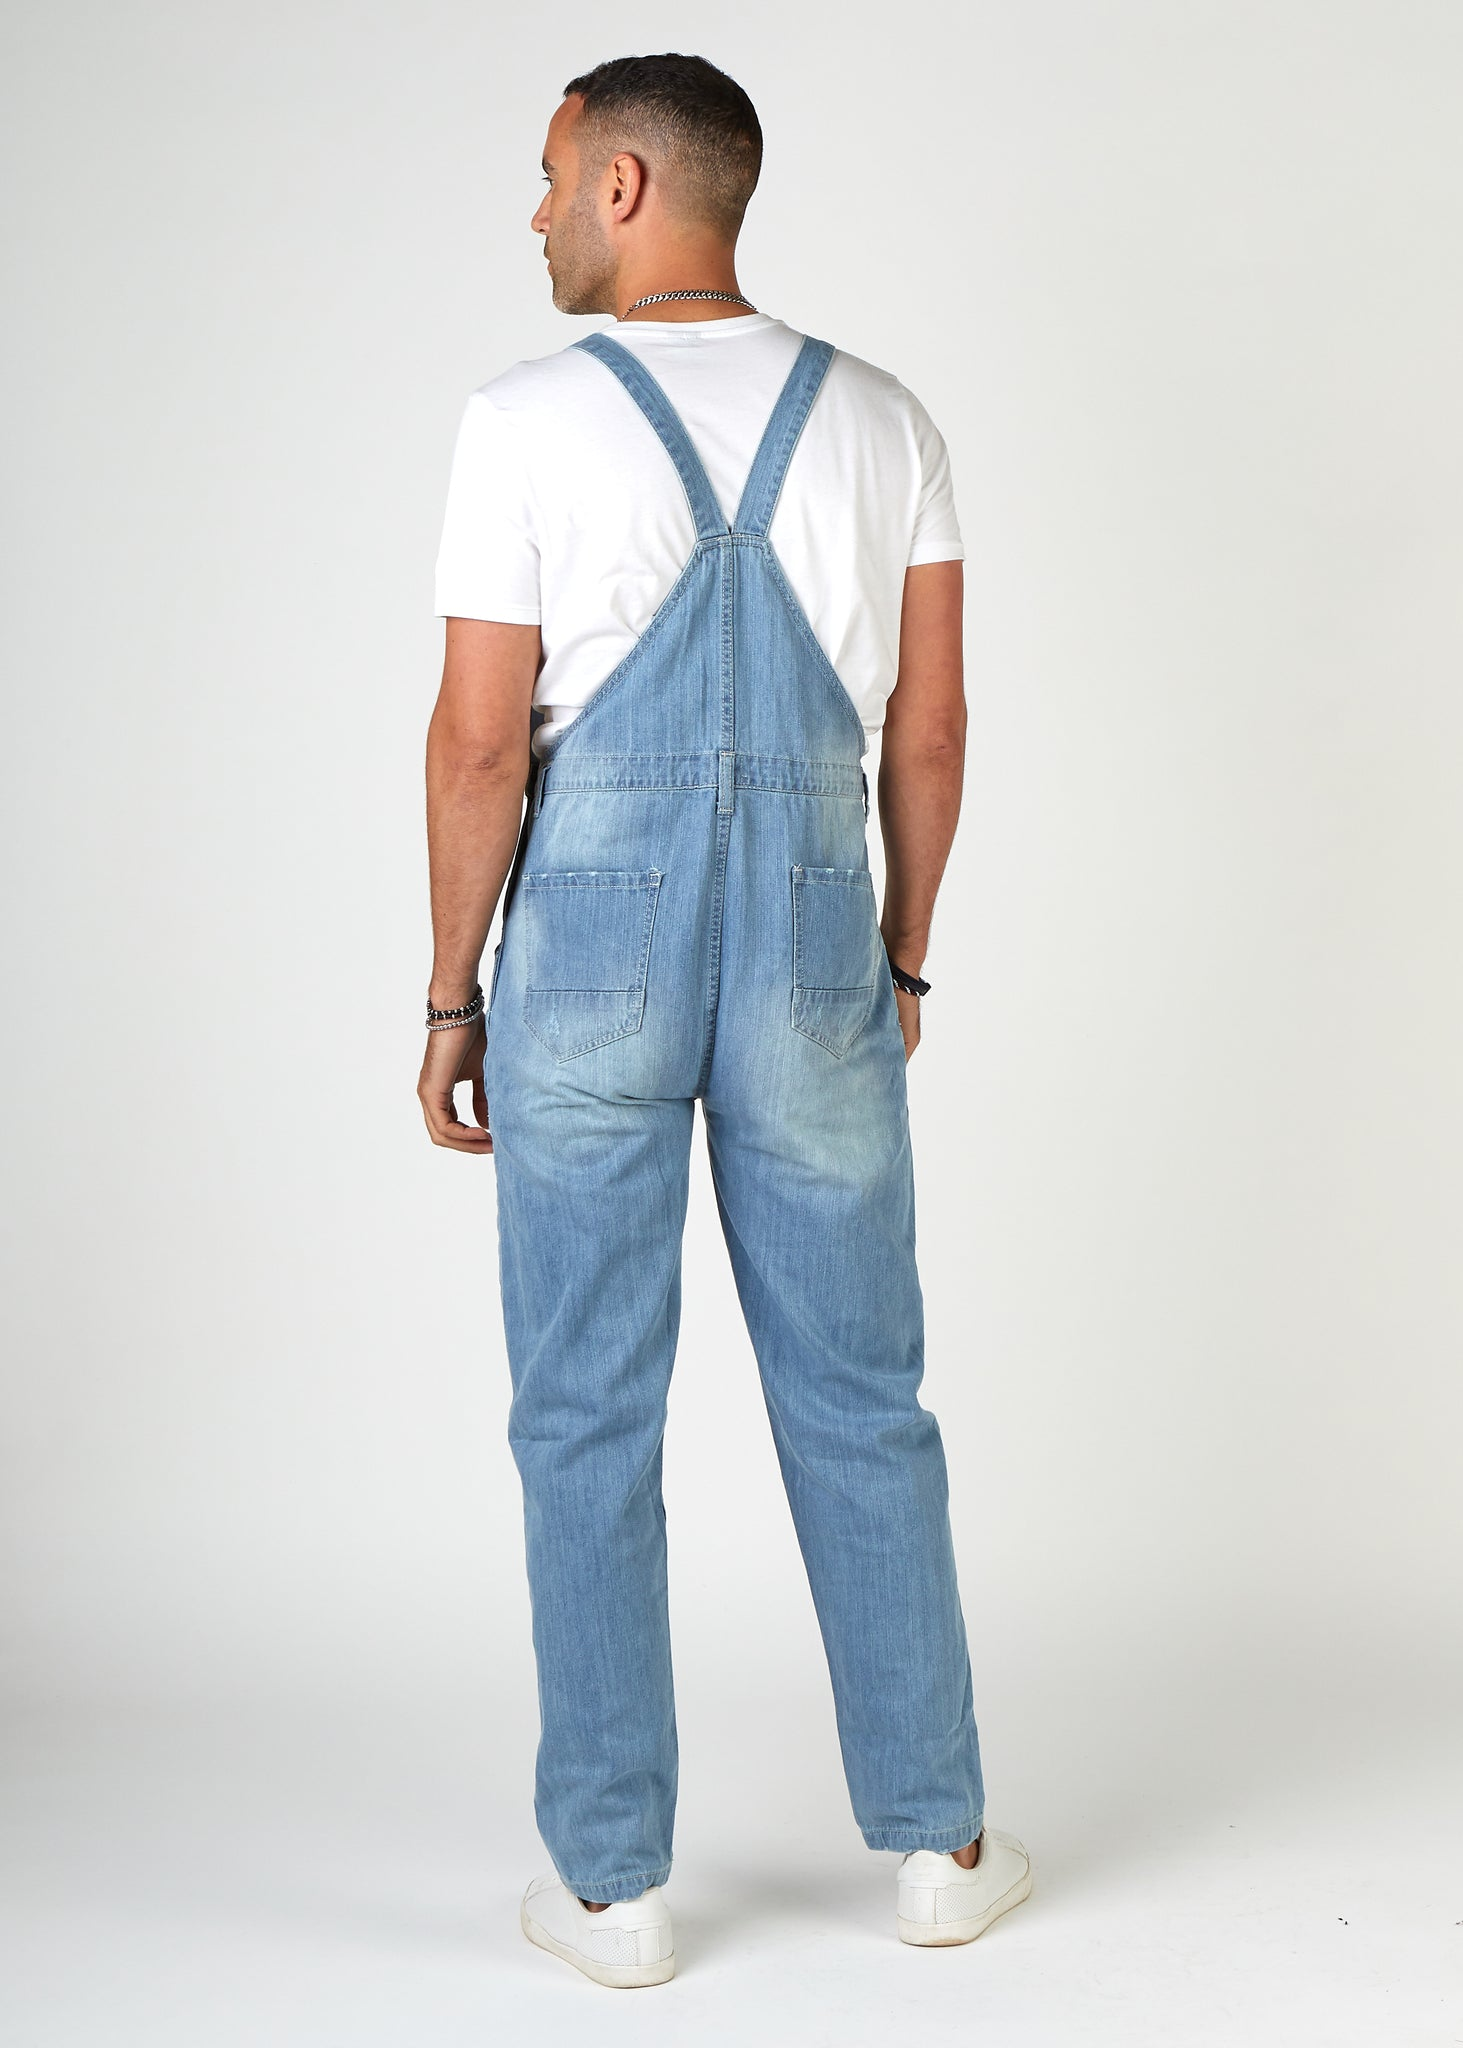 BERTIE Mens Loose Fit Dungarees Pale Wash with Rips